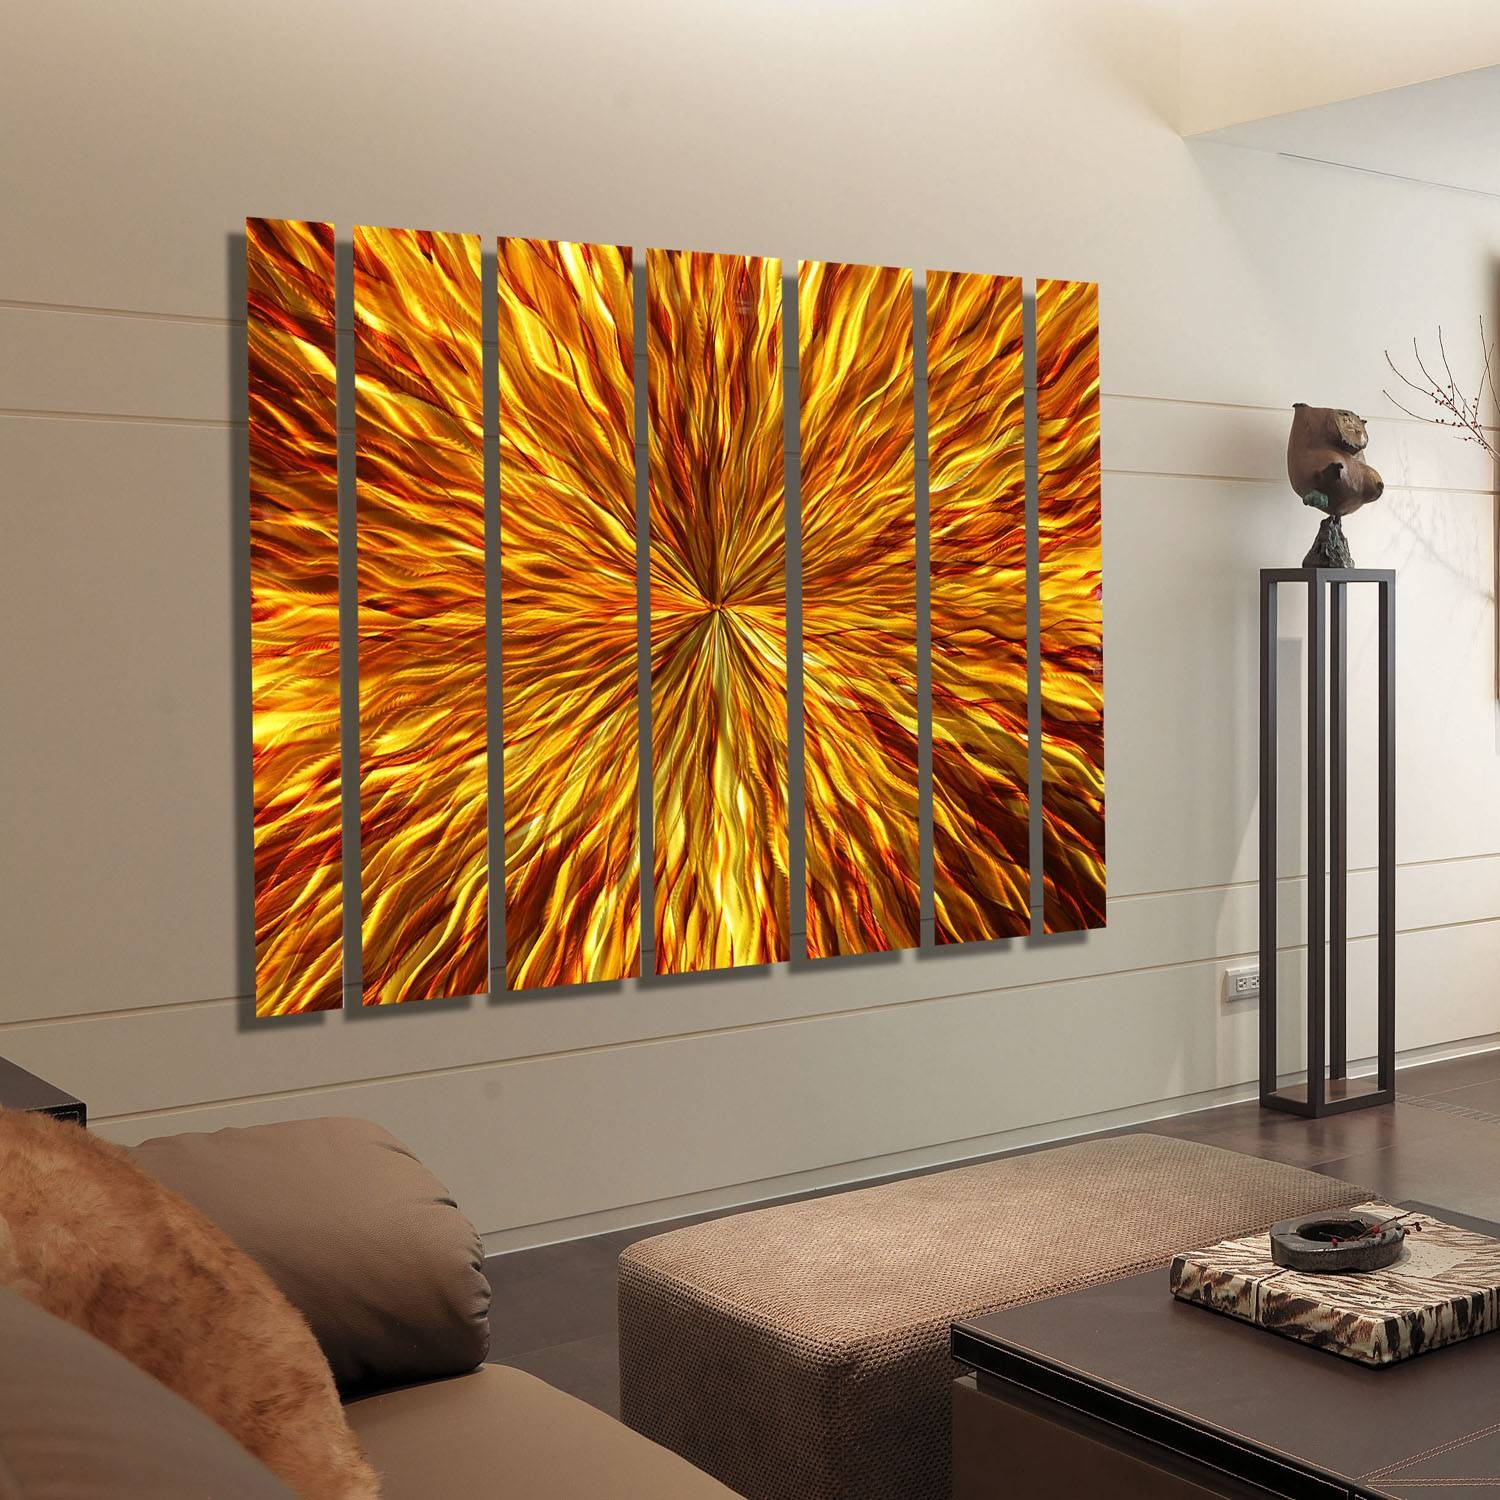 Amber Vortex Xl – Extra Large Modern Metal Wall Artjon Allen Regarding Newest Modern Abstract Metal Wall Art (View 5 of 20)